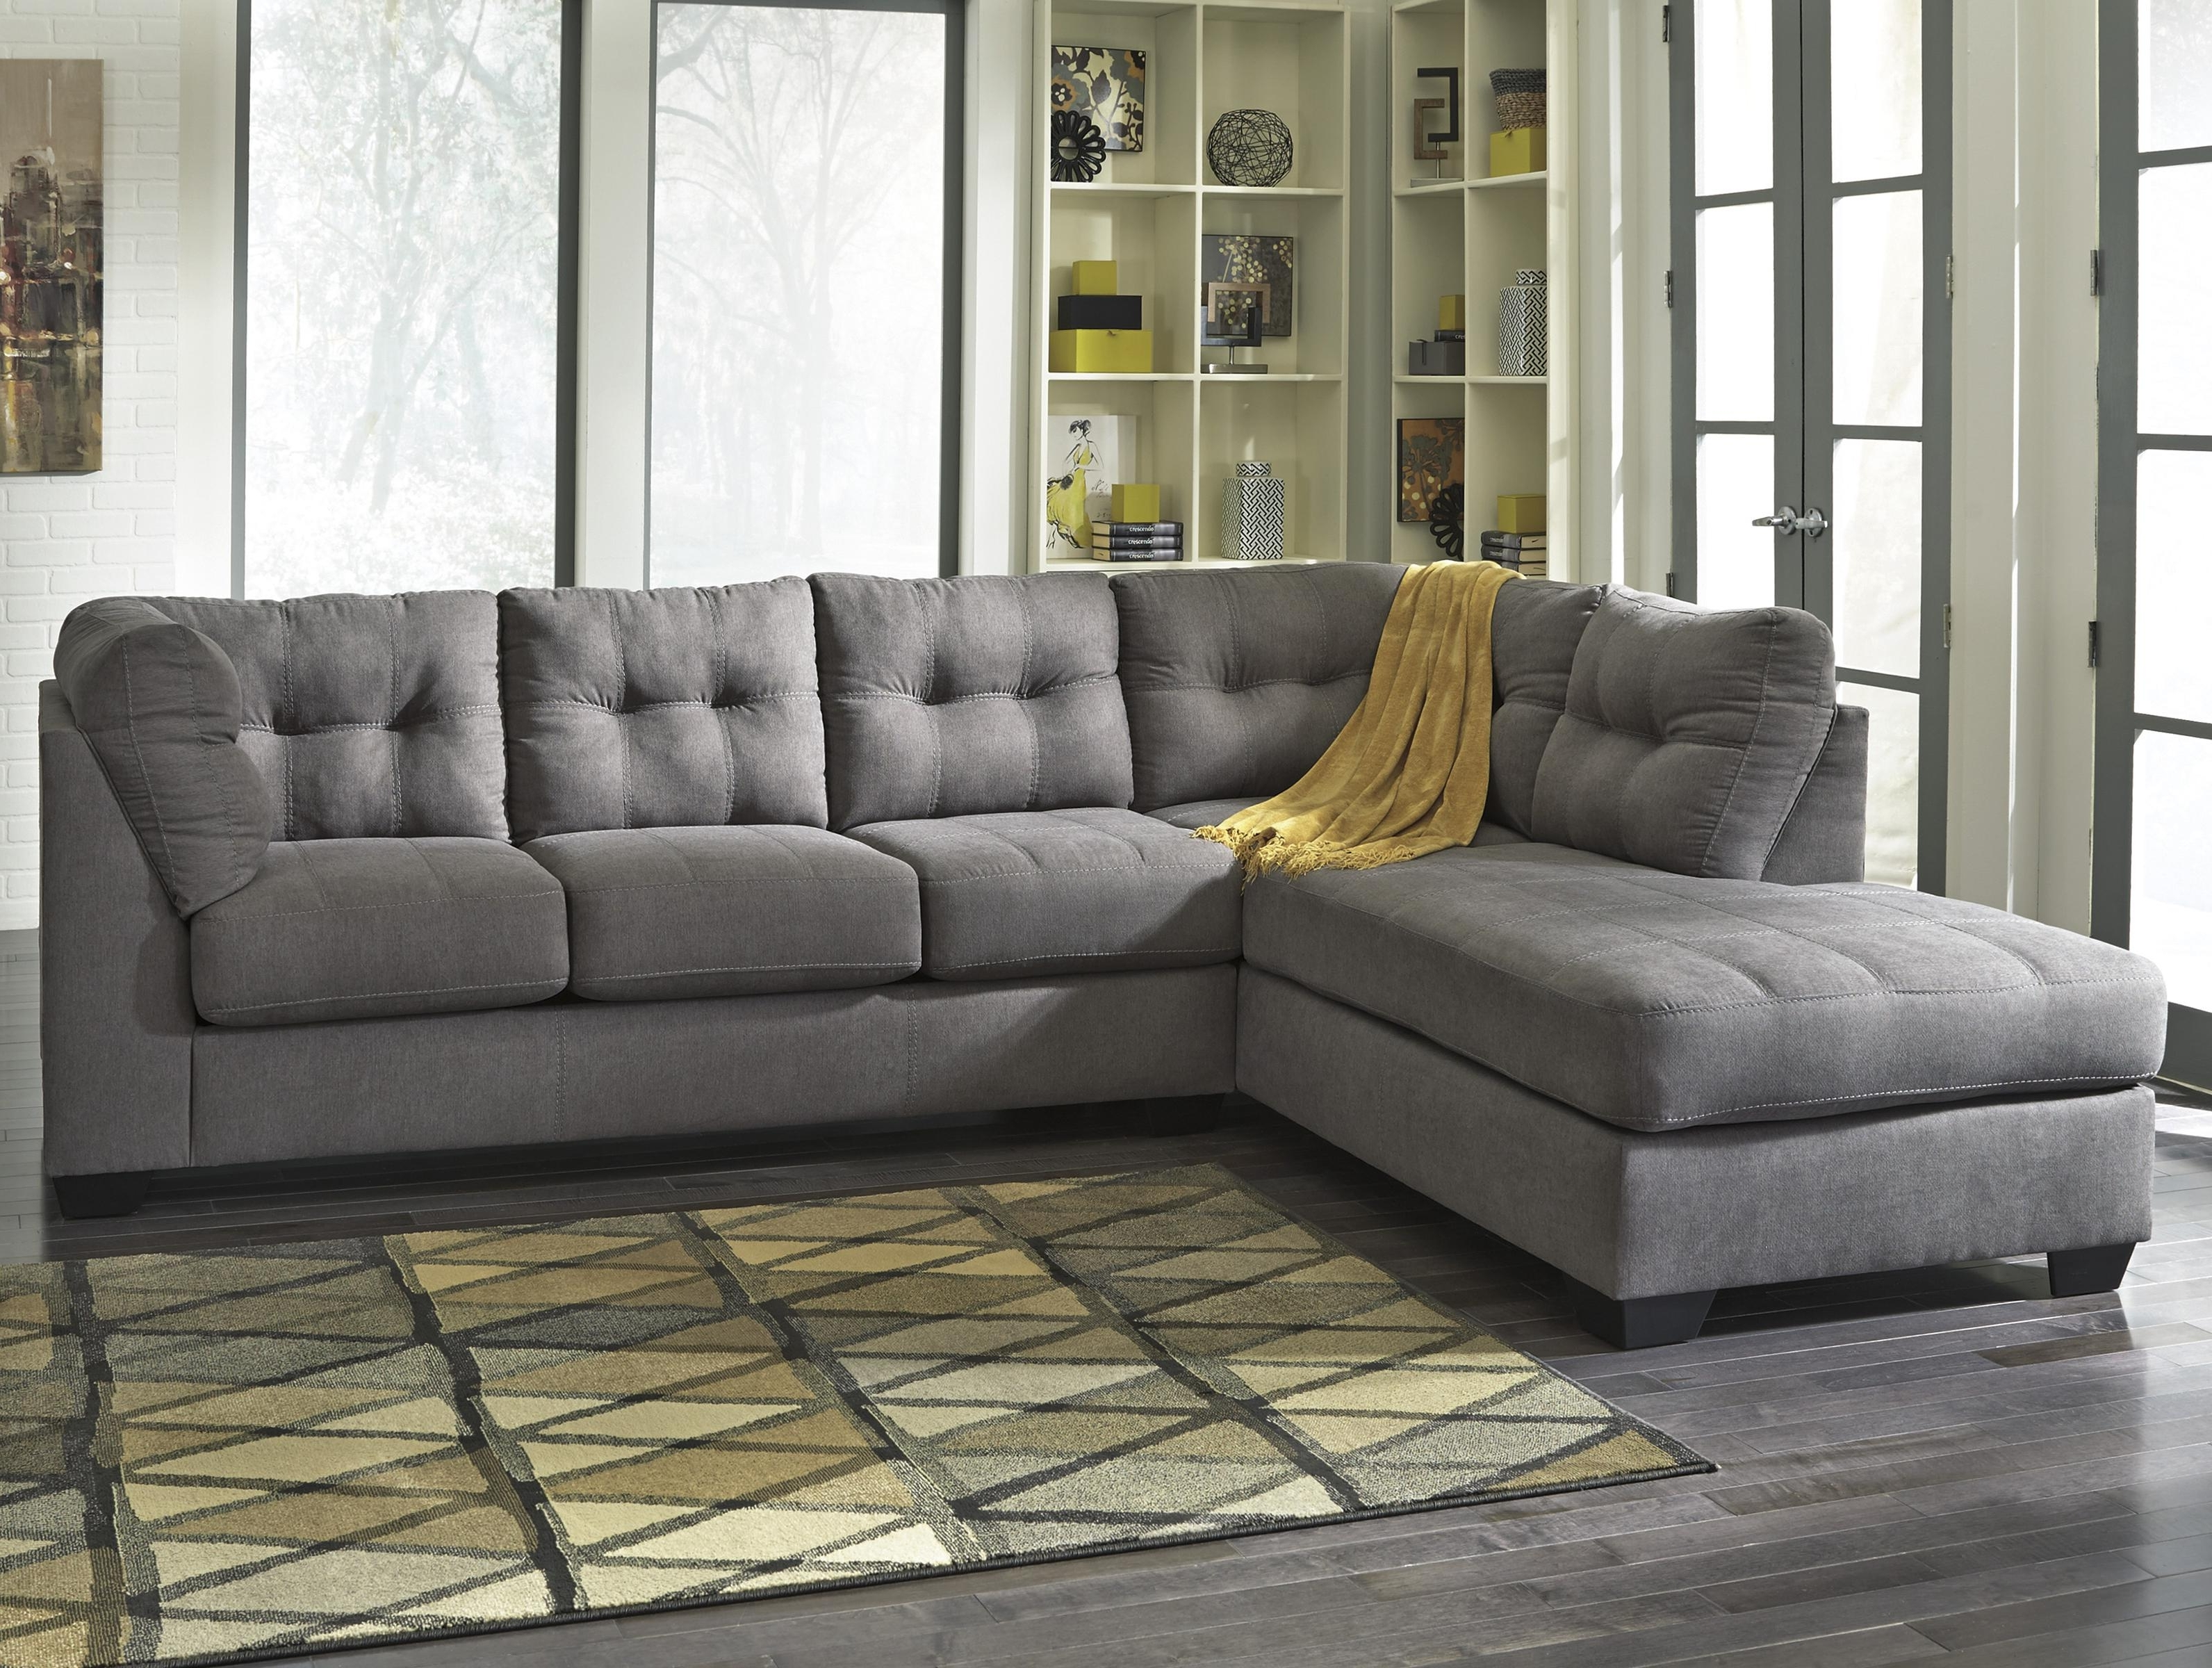 Benchcraft Maier – Charcoal 2 Piece Sectional With Left Chaise Regarding Most Recent Sectionals With Chaise (View 2 of 15)